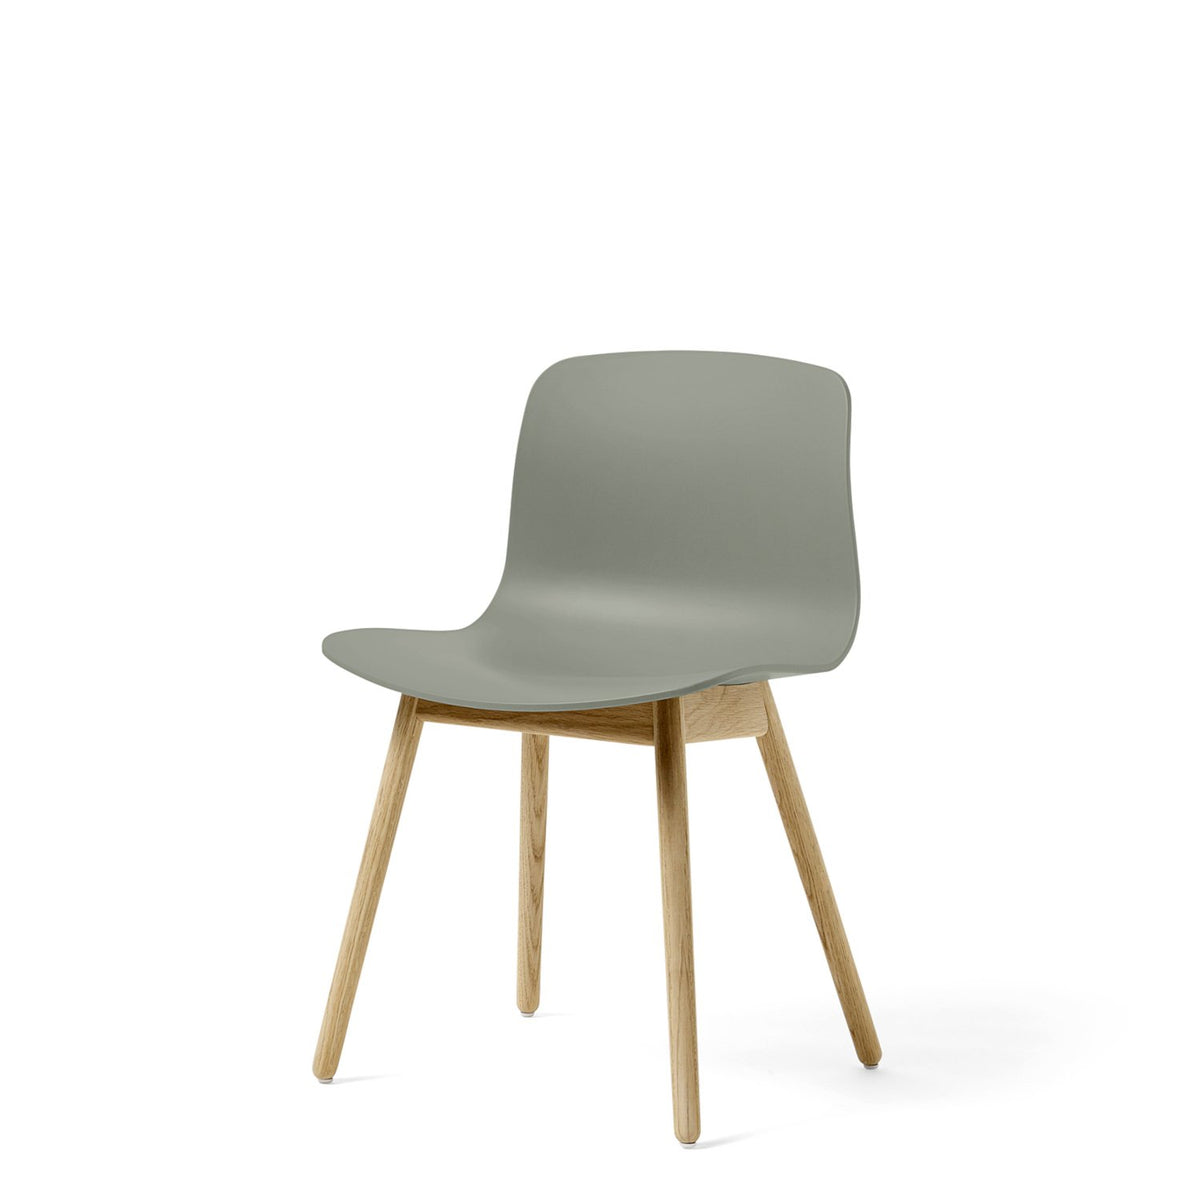 HAY About A Chair AAC12 Dusty Green Chair with Matt Lacquered Solid Oak Frame